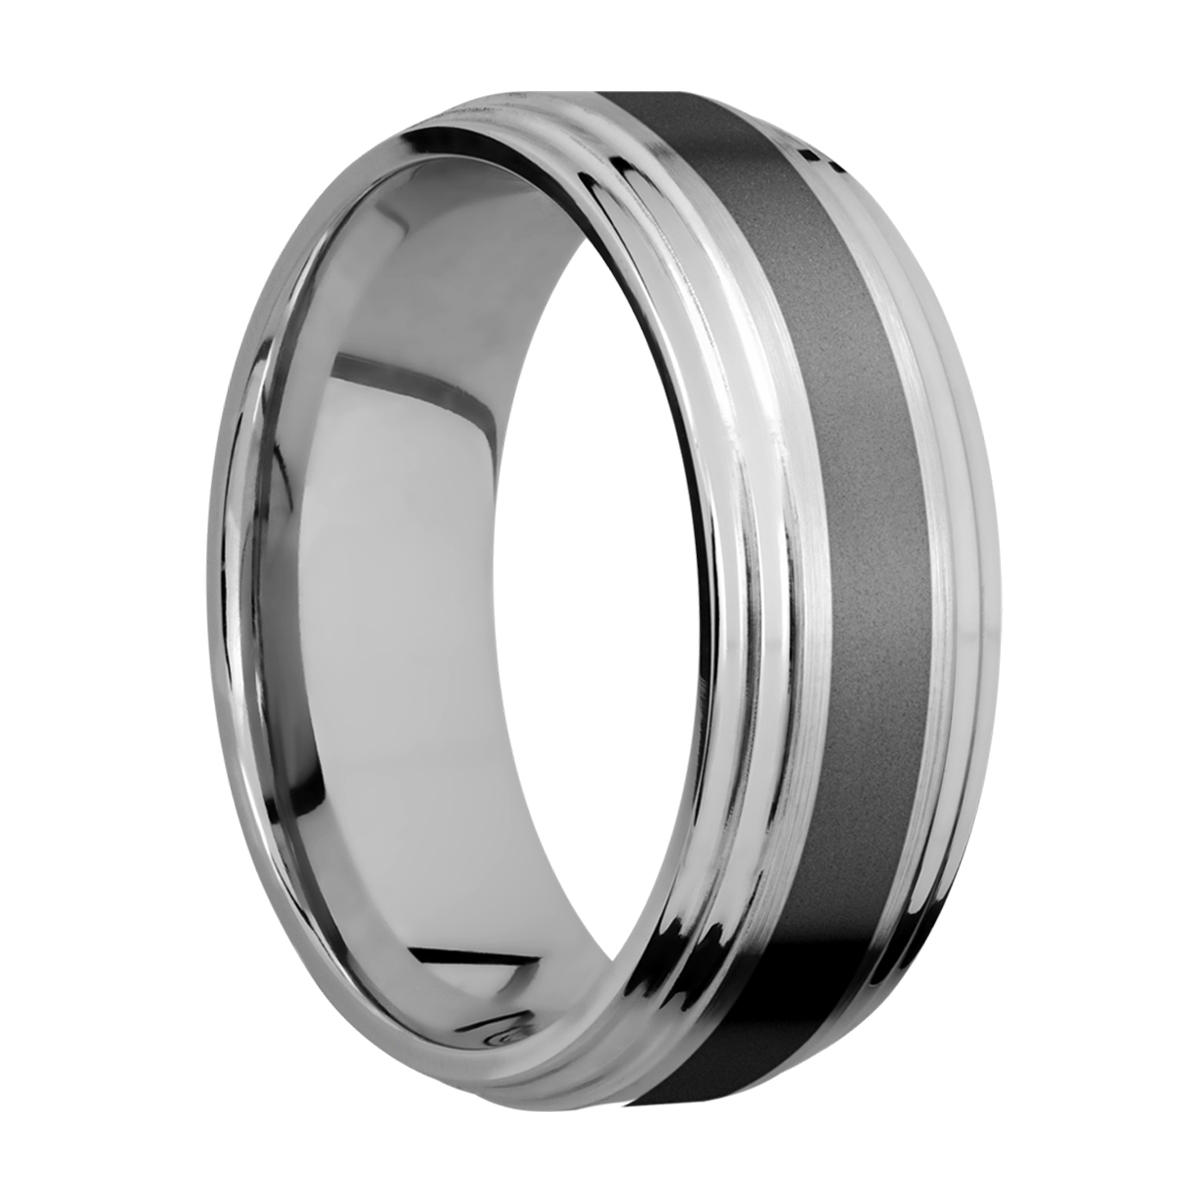 Lashbrook PF8F2S13/ZIRCONIUM Titanium Wedding Ring or Band Alternative View 1